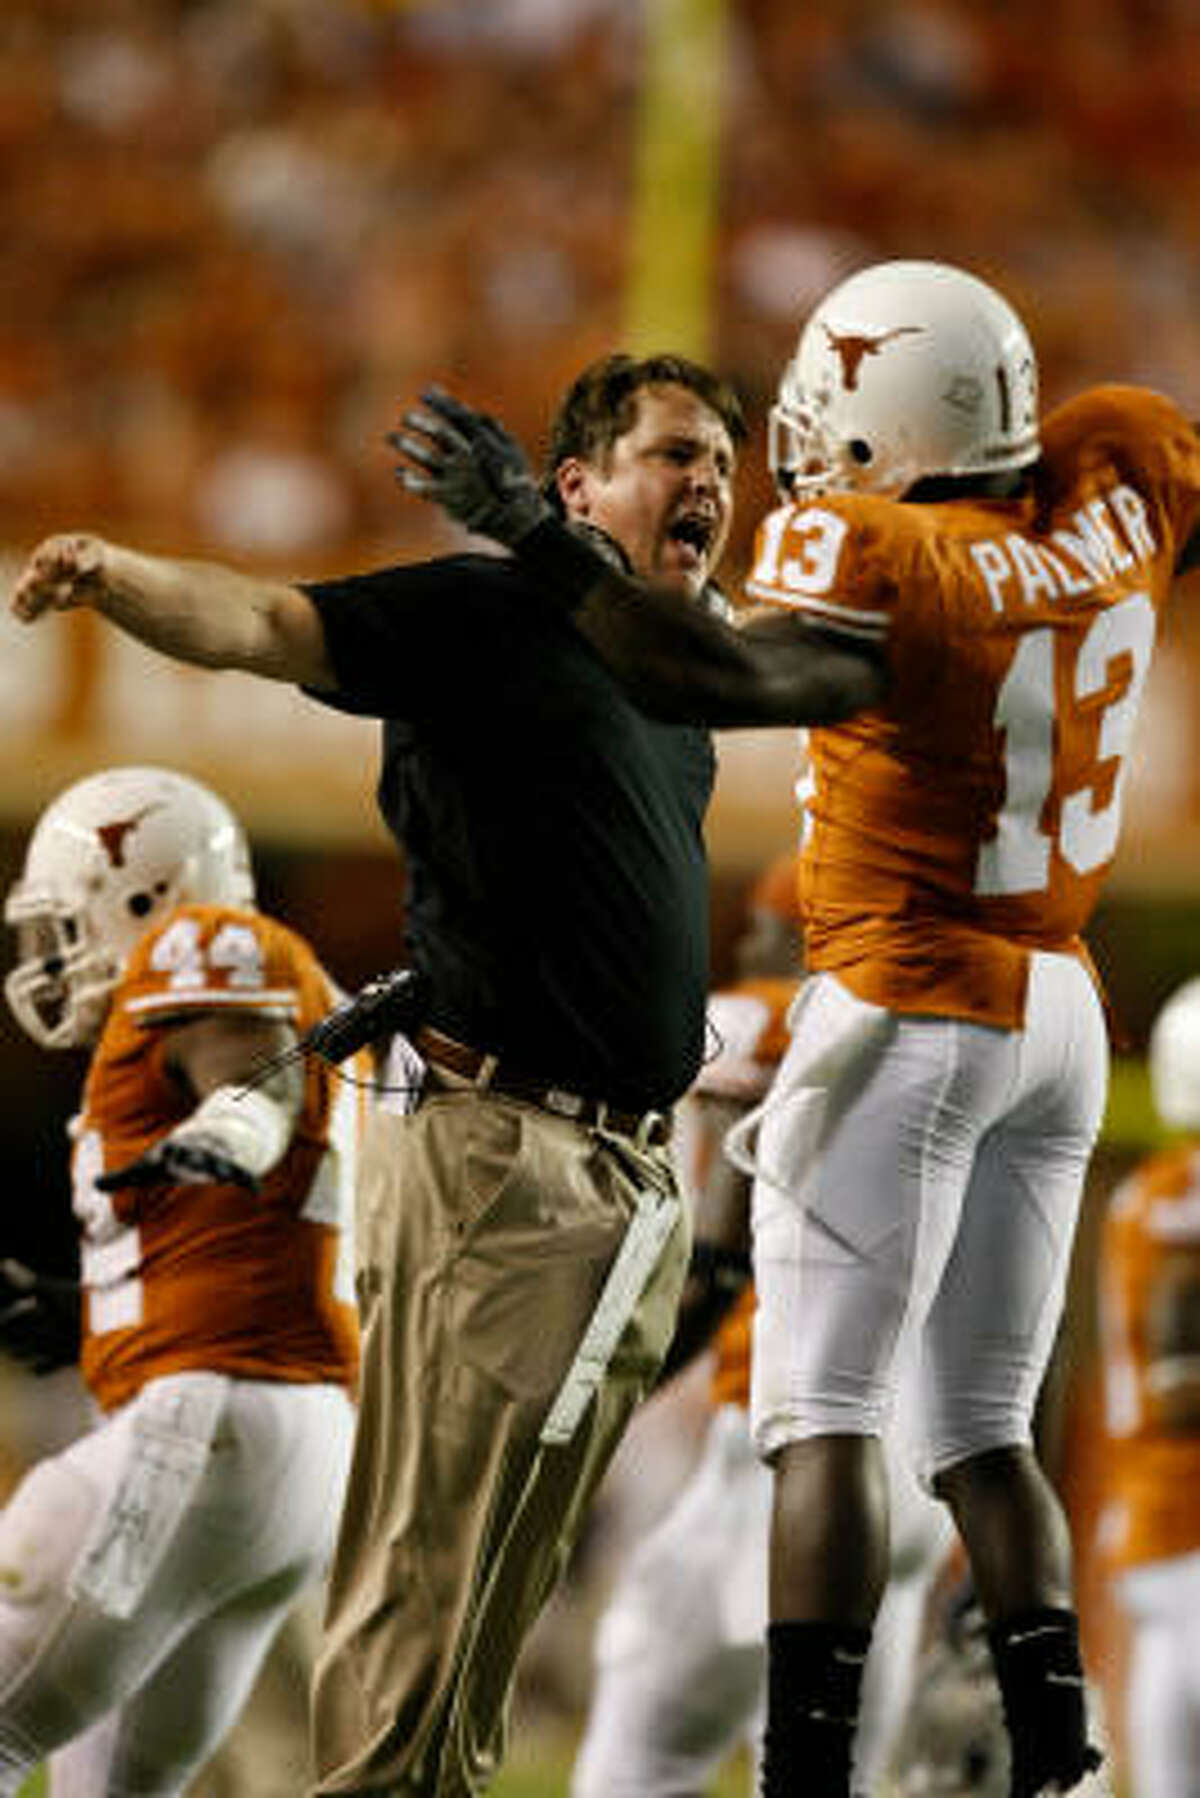 University of Texas defensive coordinator Will Muschamp was named the successor to Mack Brown at the end of the 2008 season. Muschamp has a guaranteed five-year deal that will pay him $2 million annually when he takes over the Longhorns.